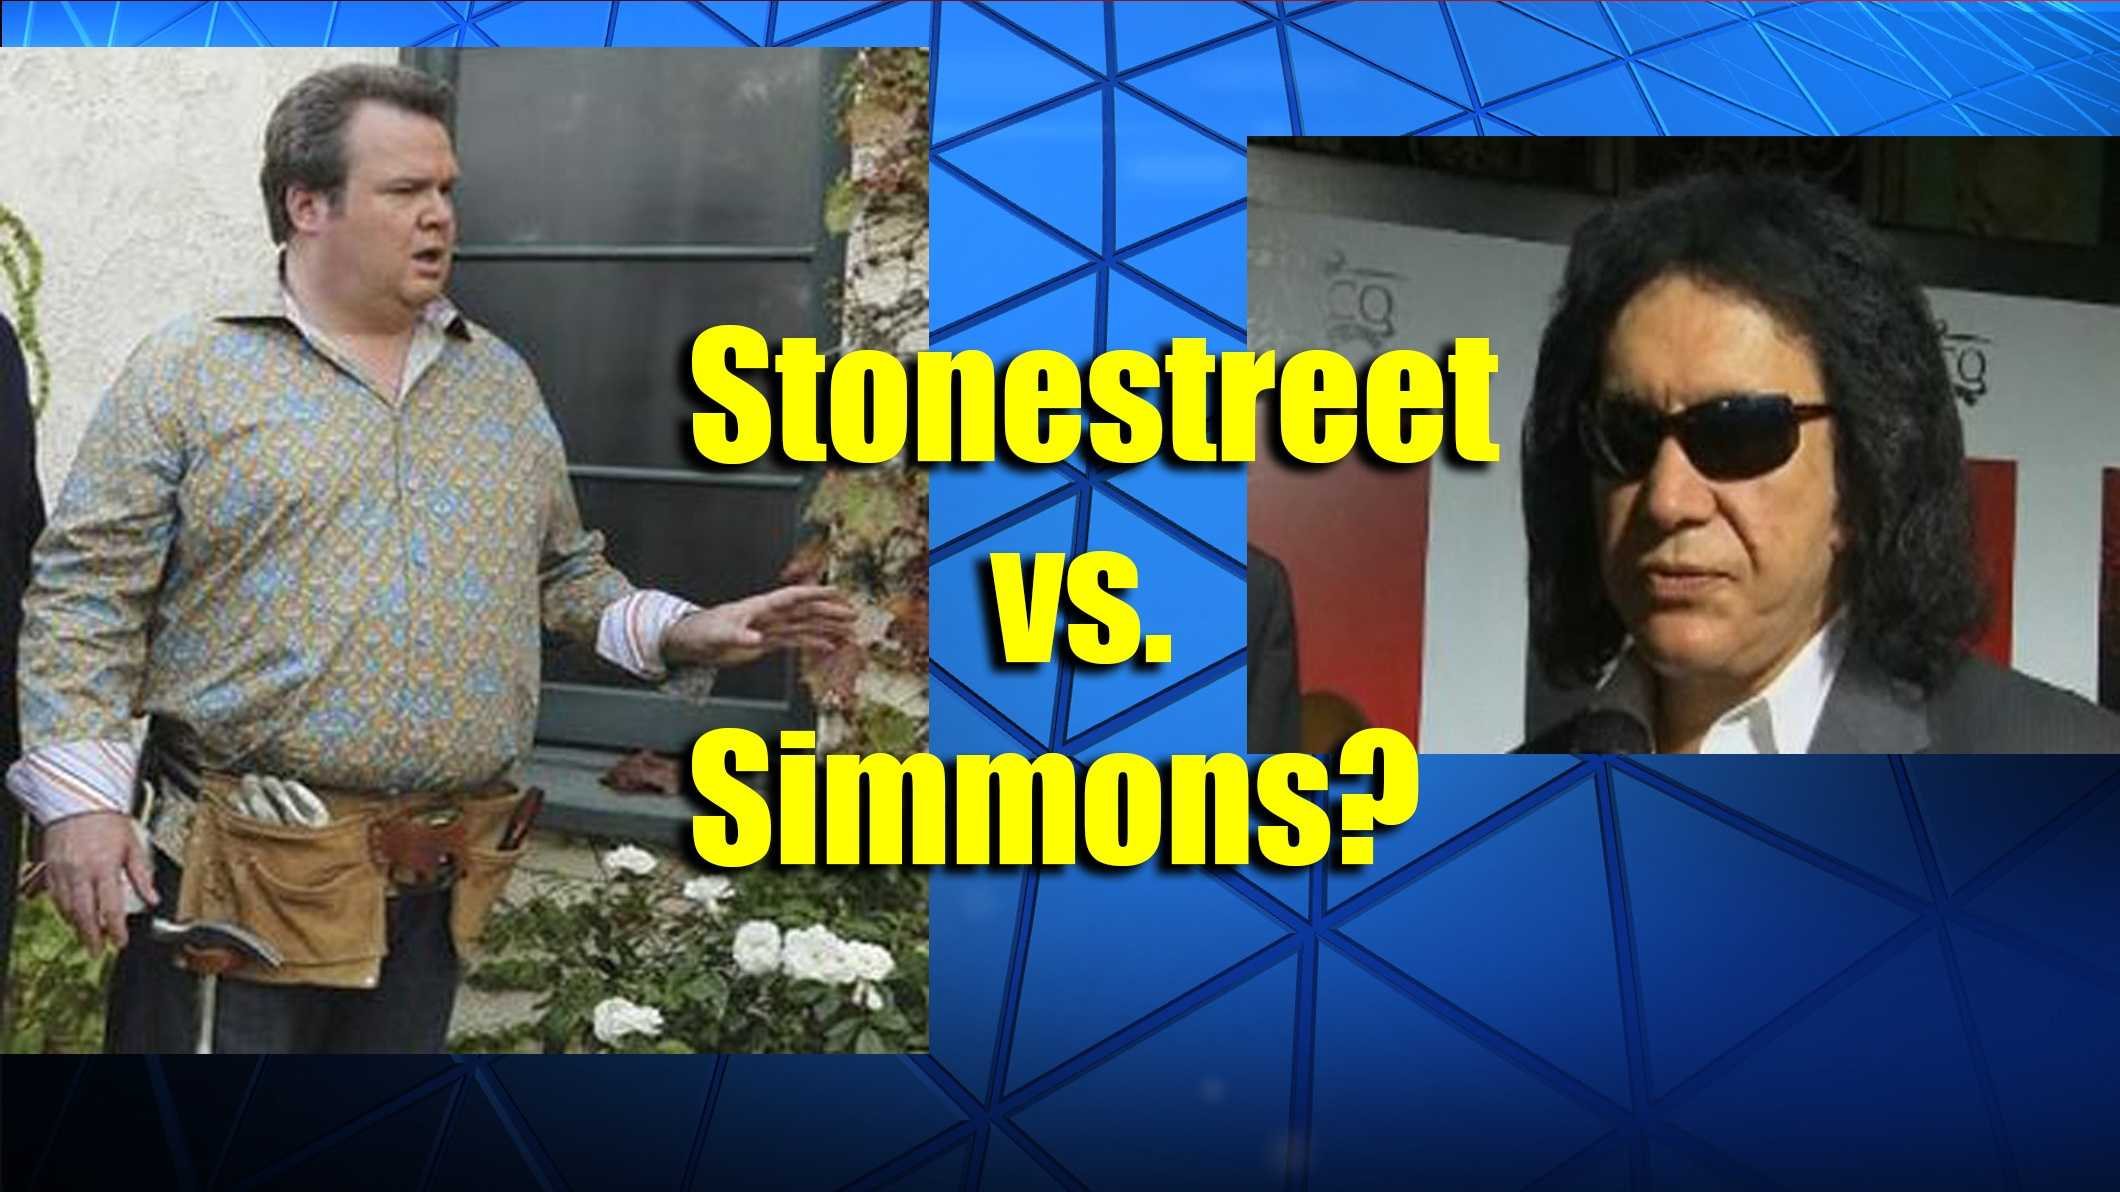 Why is Eric Stonestreet asking Gene Simmons to apologize to his mother?